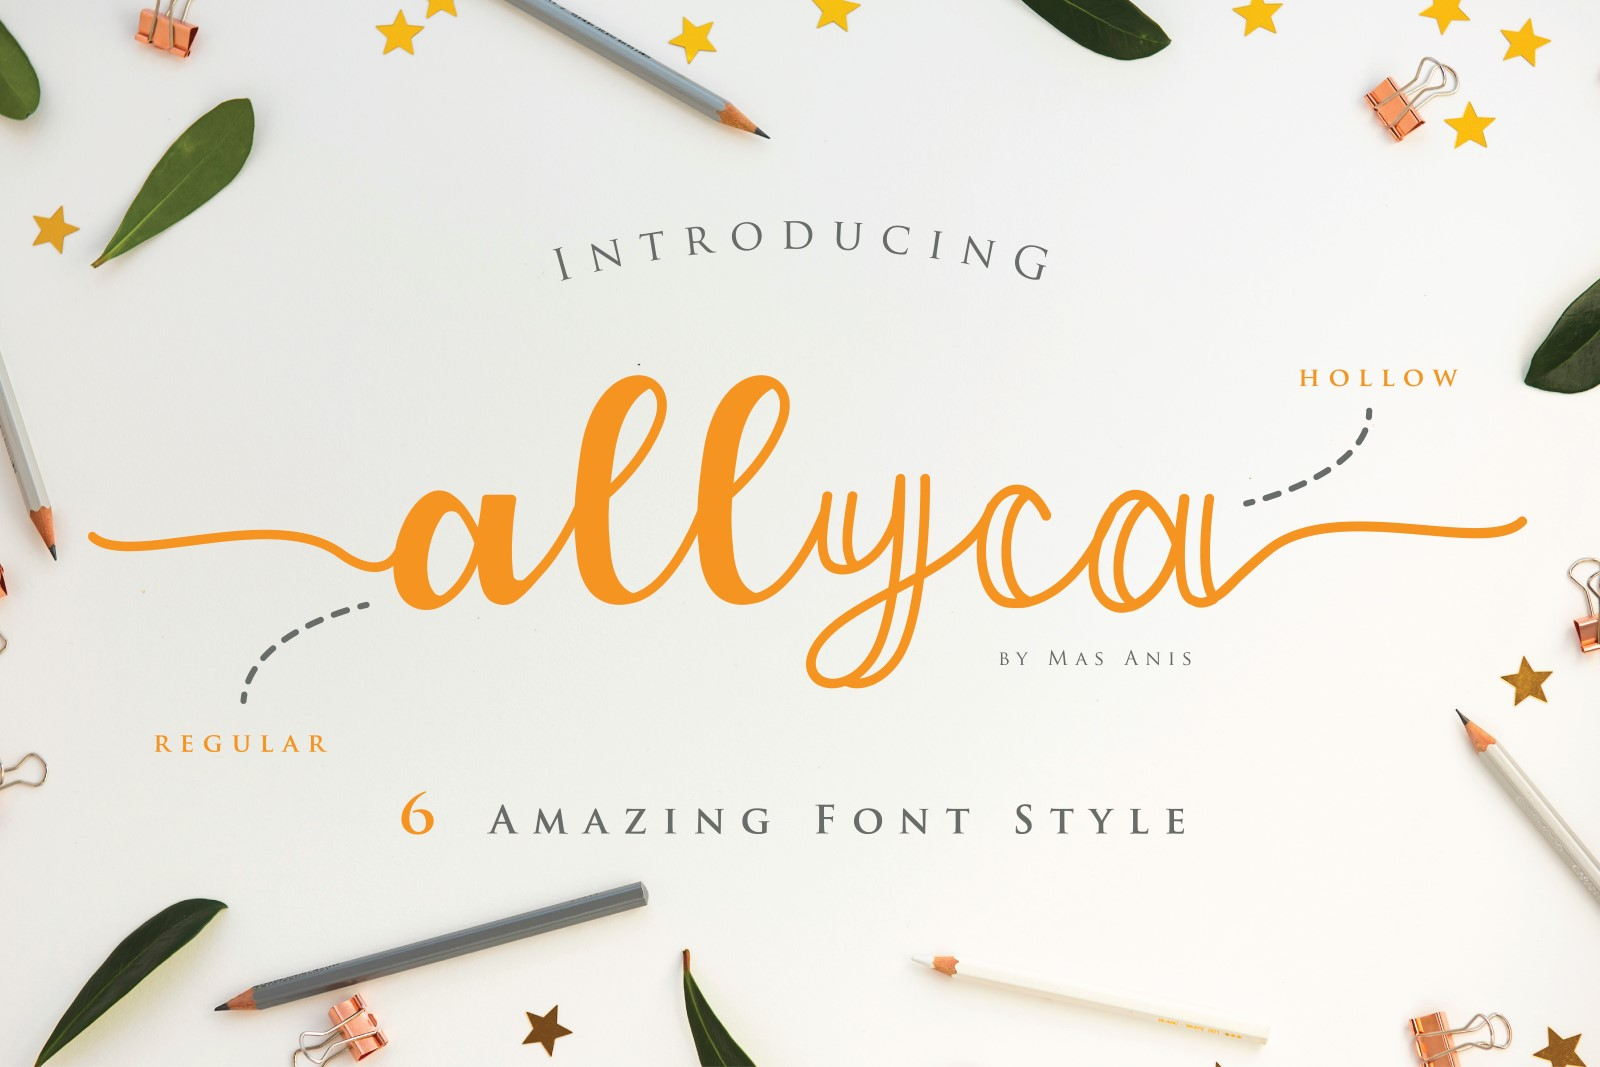 Allyca Font By Mas Anis Image 1